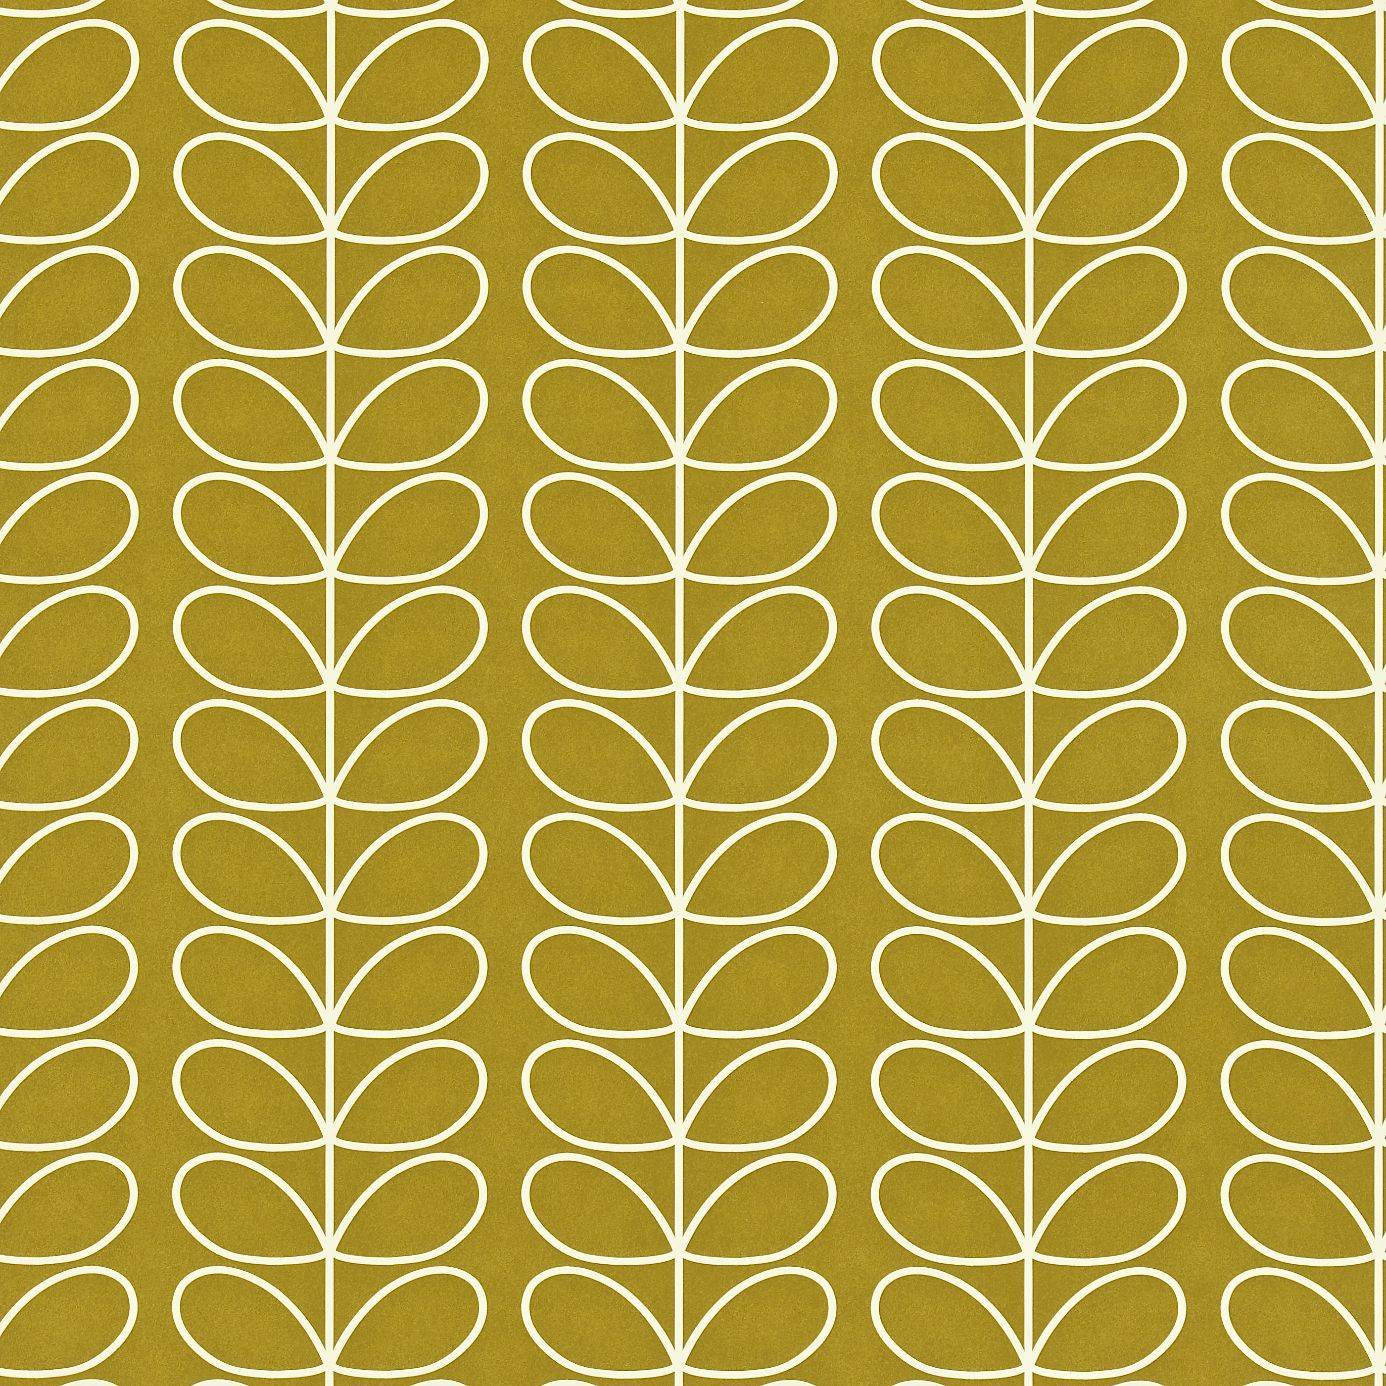 Harlequin Orla Kiely Wallpapers Linear Stem Wallpaper - Olive - 110401. Loading zoom